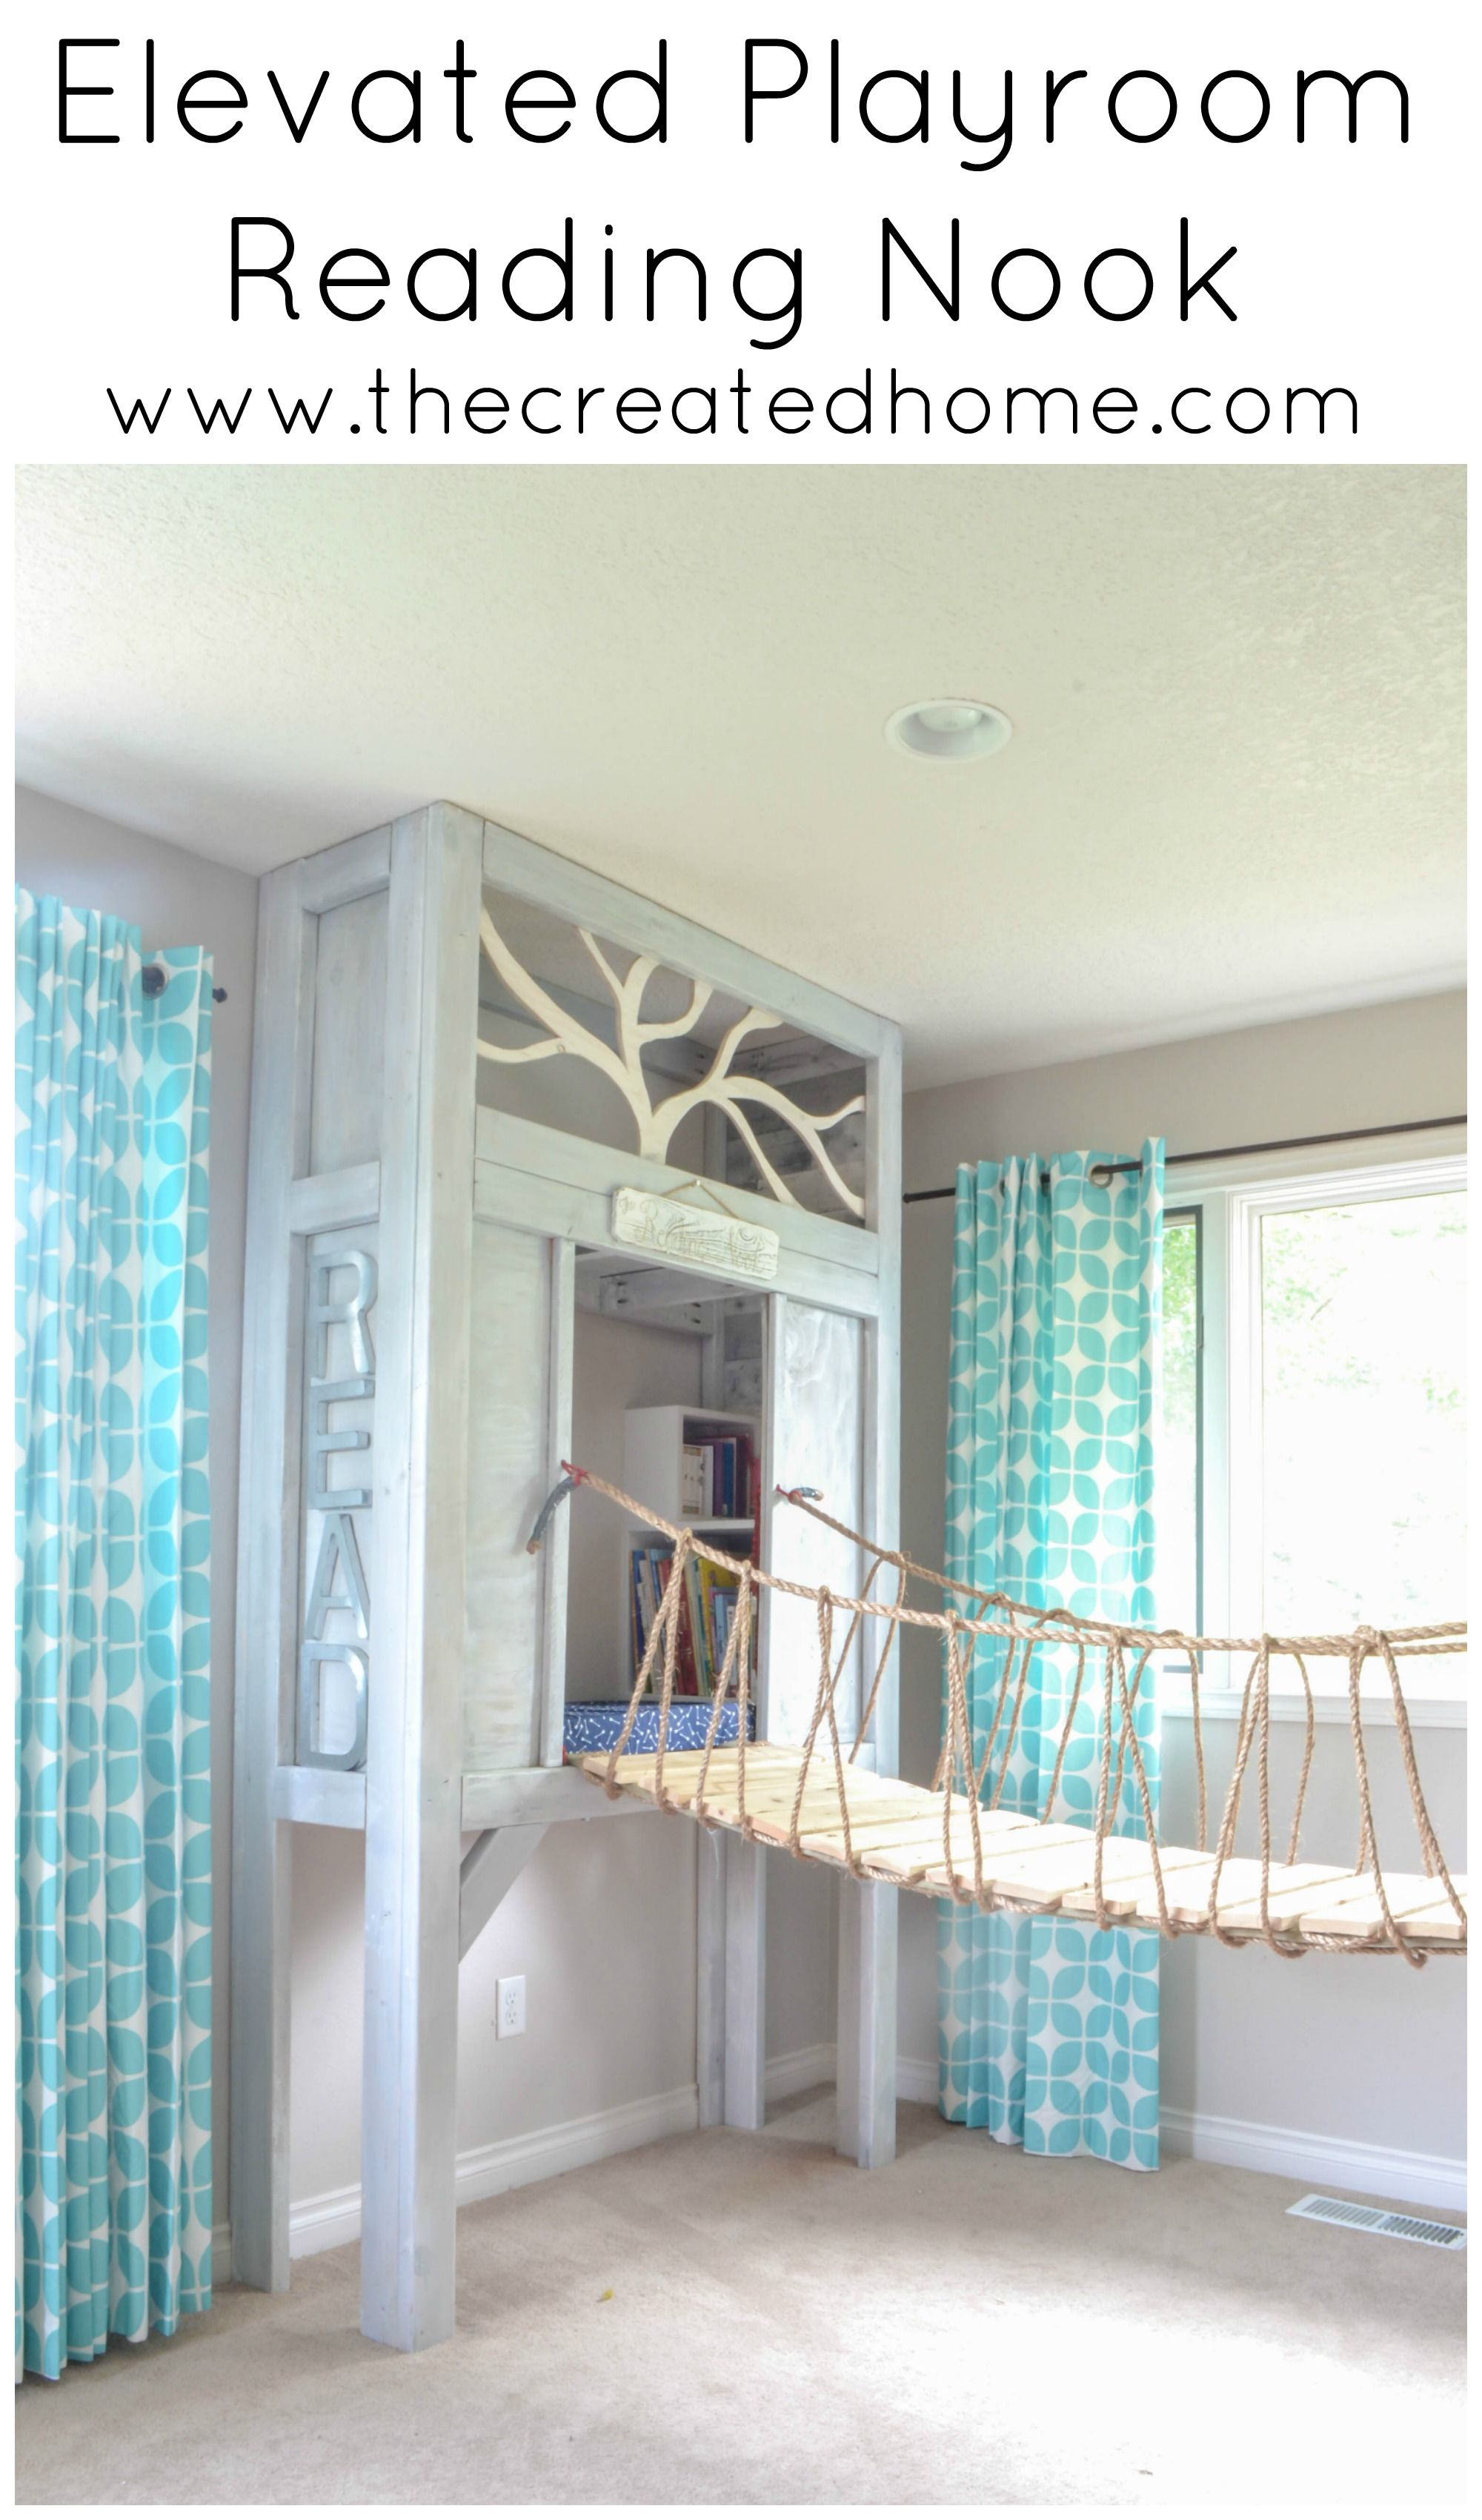 Elevated Playroom Reading Nook Cool Rooms Girl Bedroom